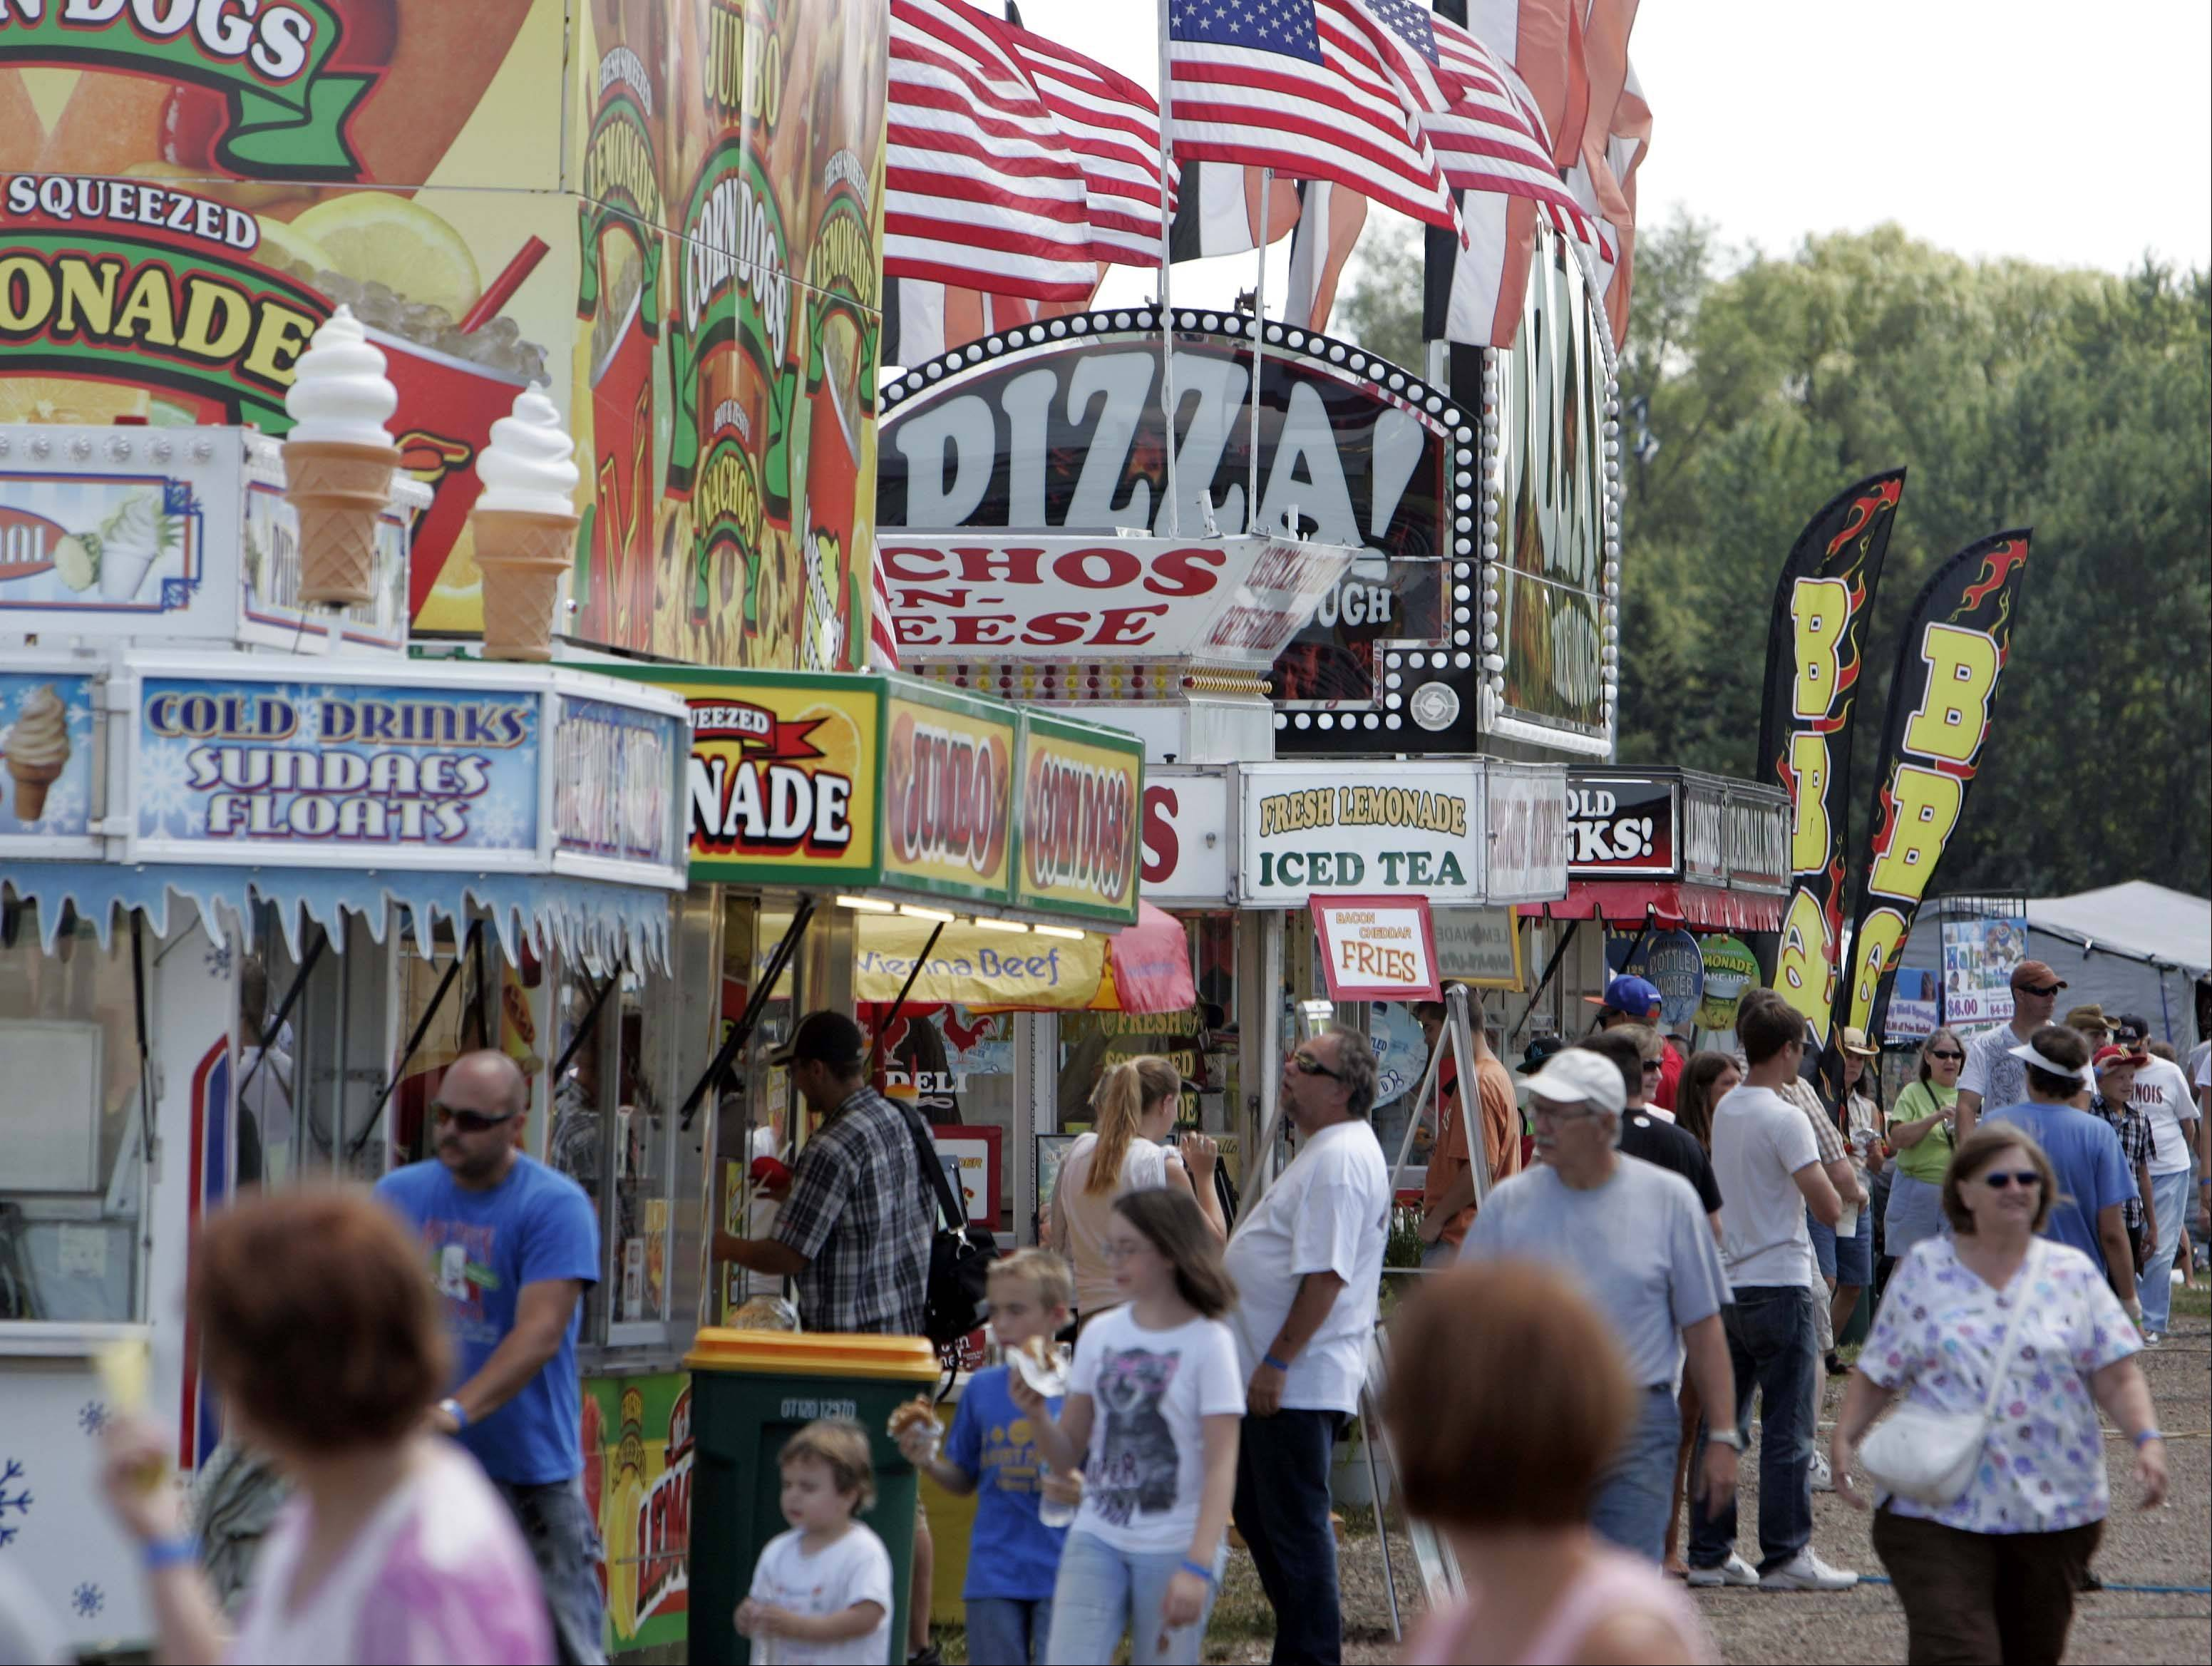 The food booths at the McHenry County Fair are lined with people Sunday.